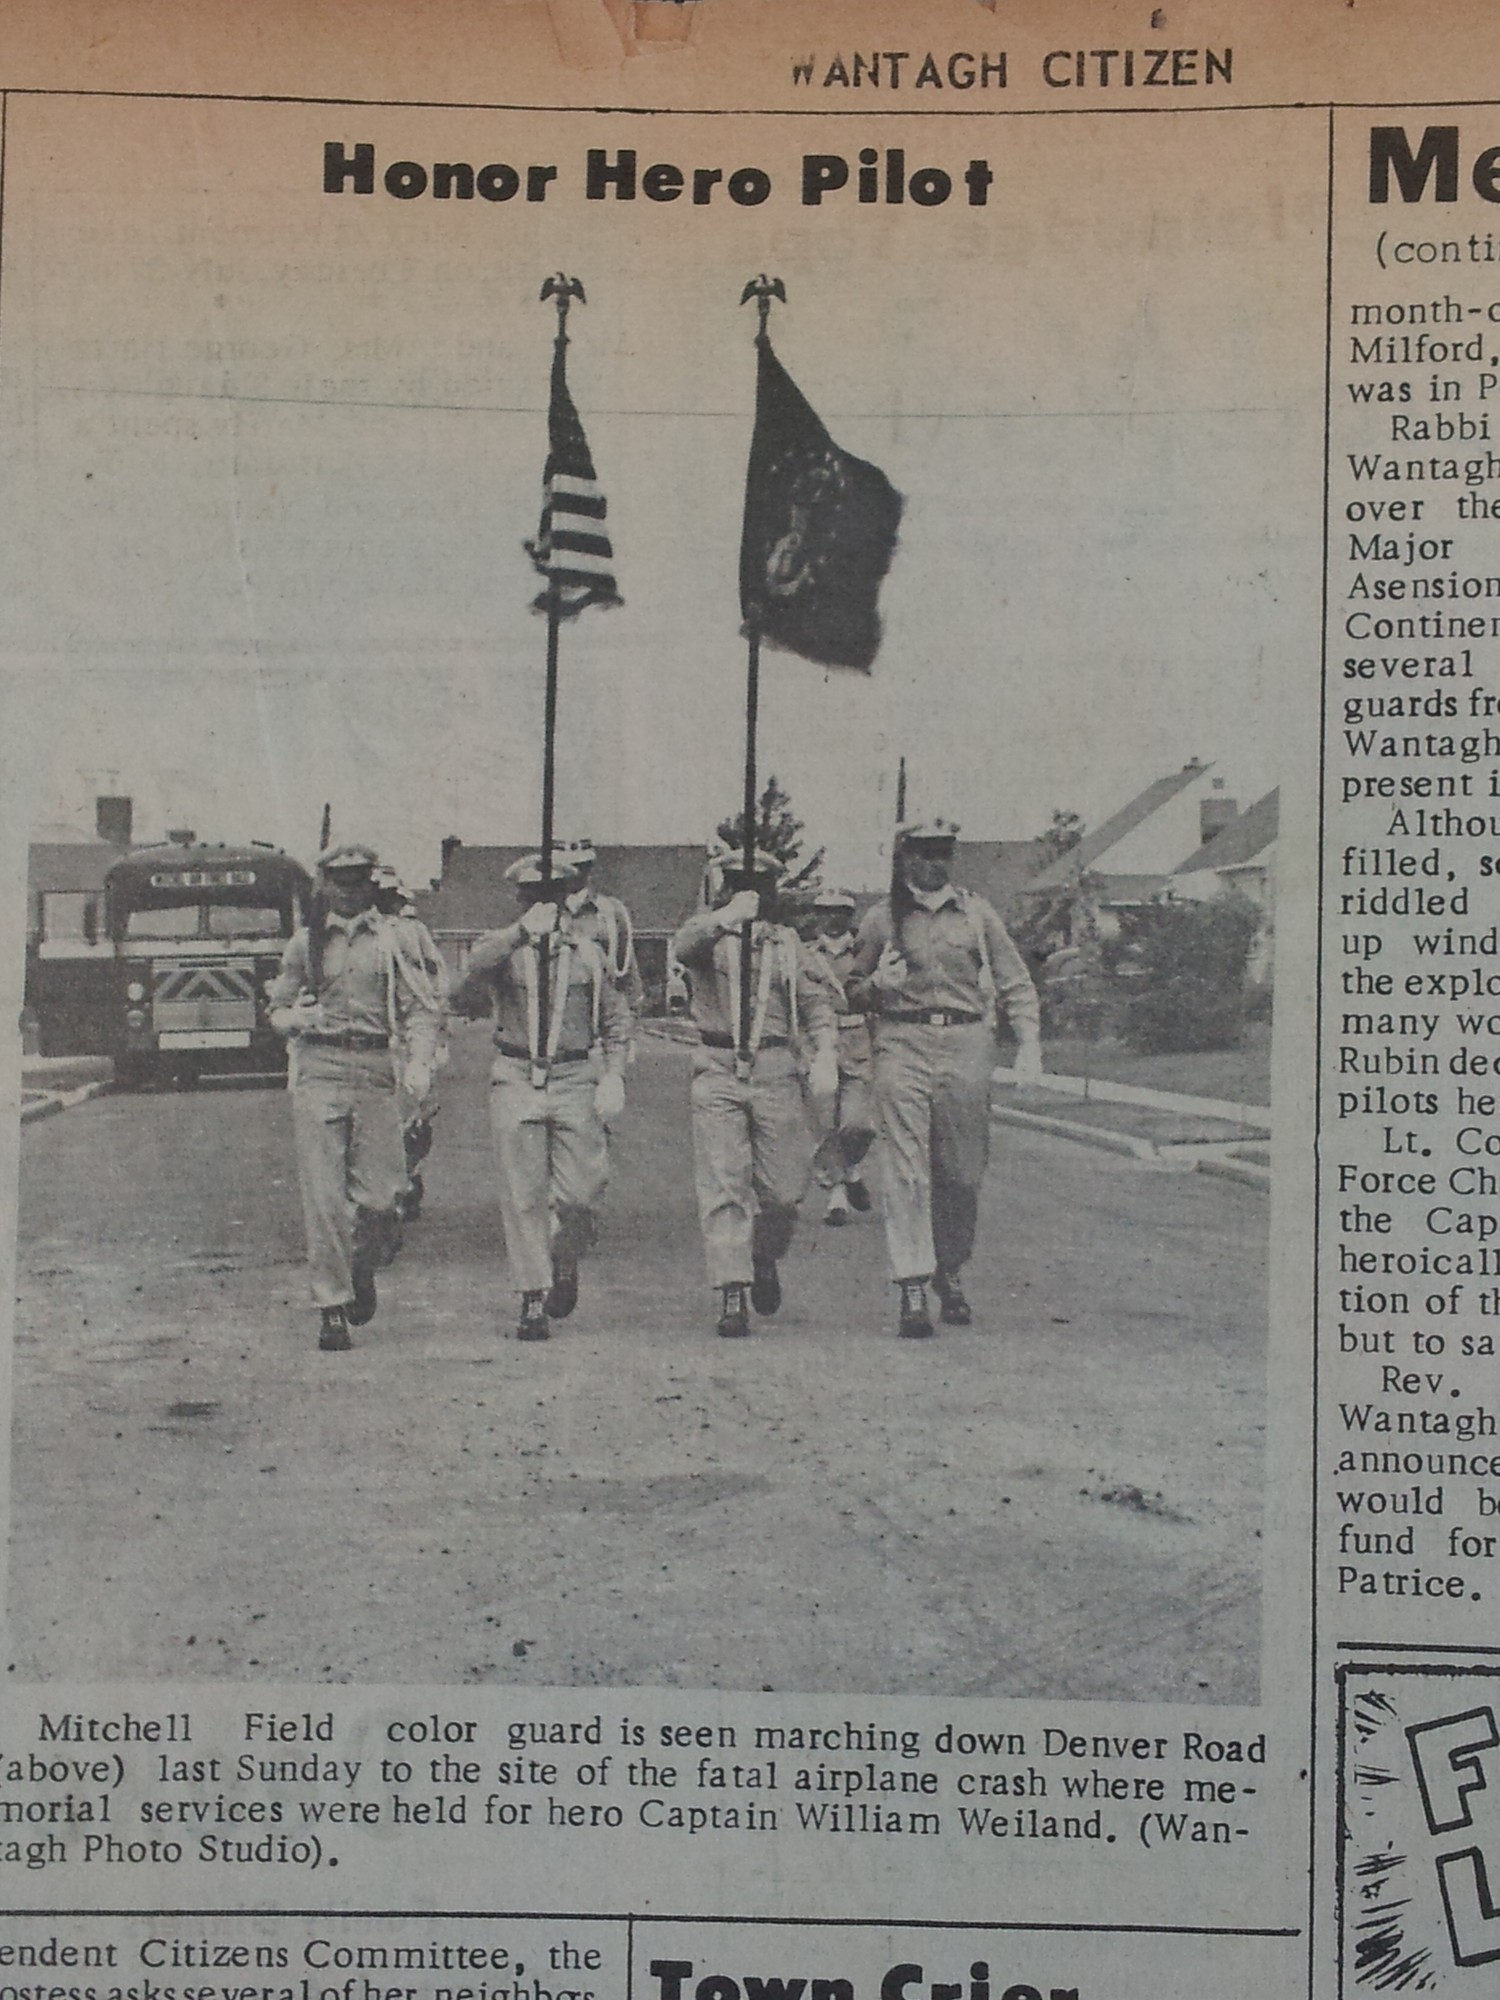 The Mitchell Field colorguard marched in honor of the pilot who crashed on Denver Street in Wantagh in 1954.